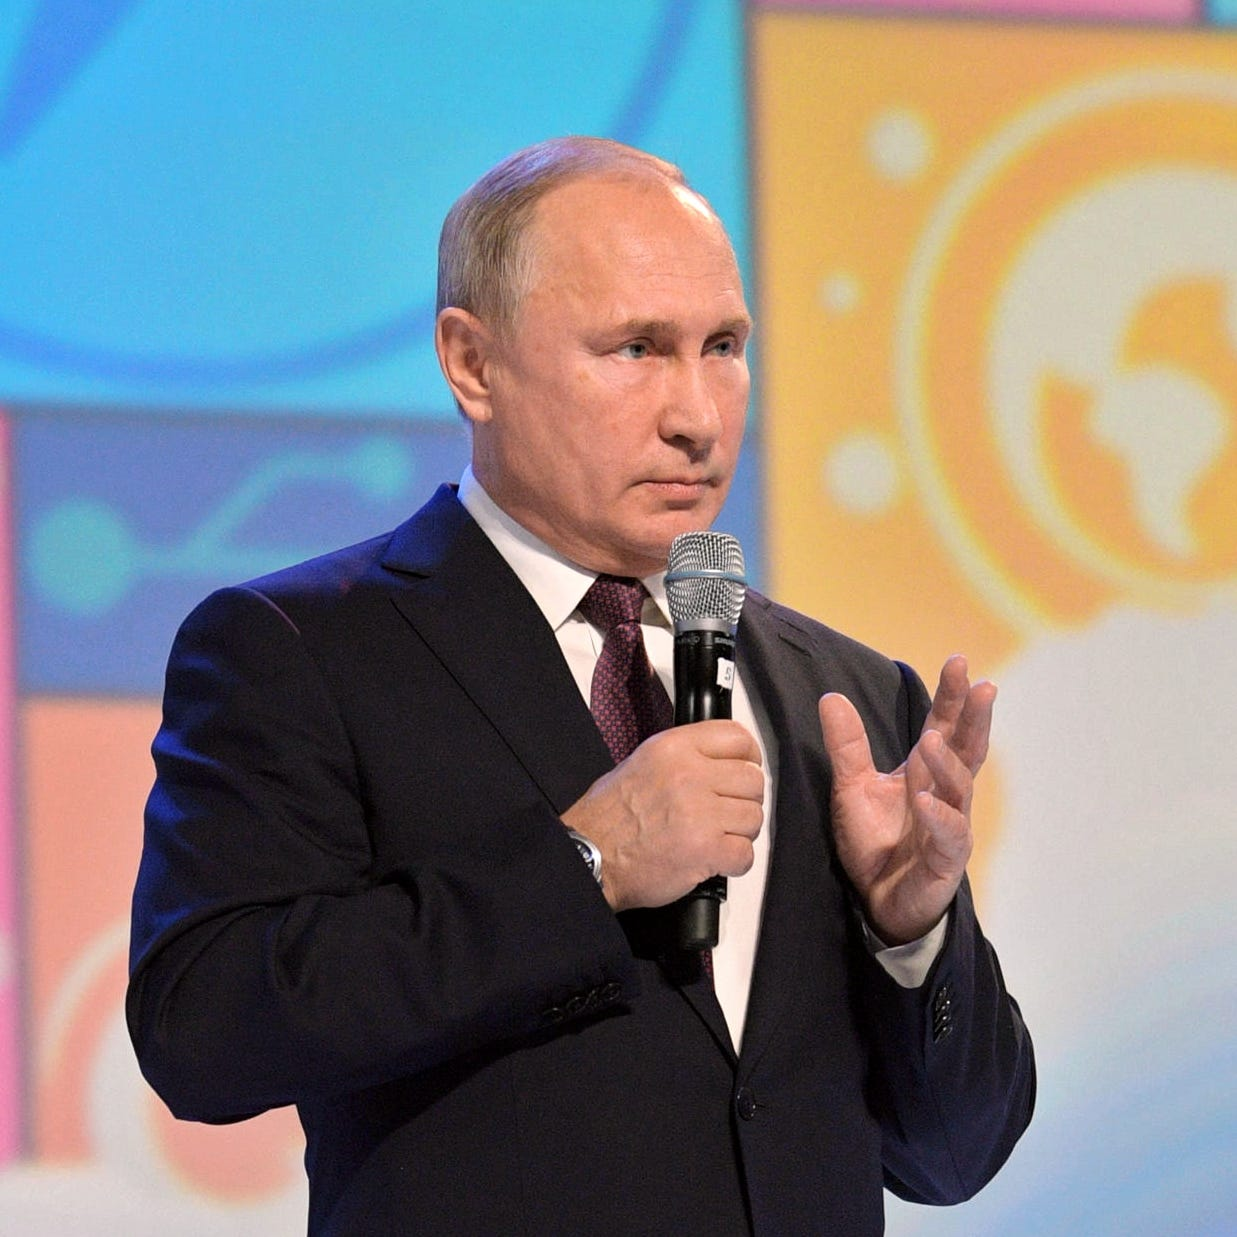 Russian President Vladimir Putin attends the 'Proektoria' All-Russian career guidance and educational forum in Yaroslavl, Russia, Dec. 13, 2018.